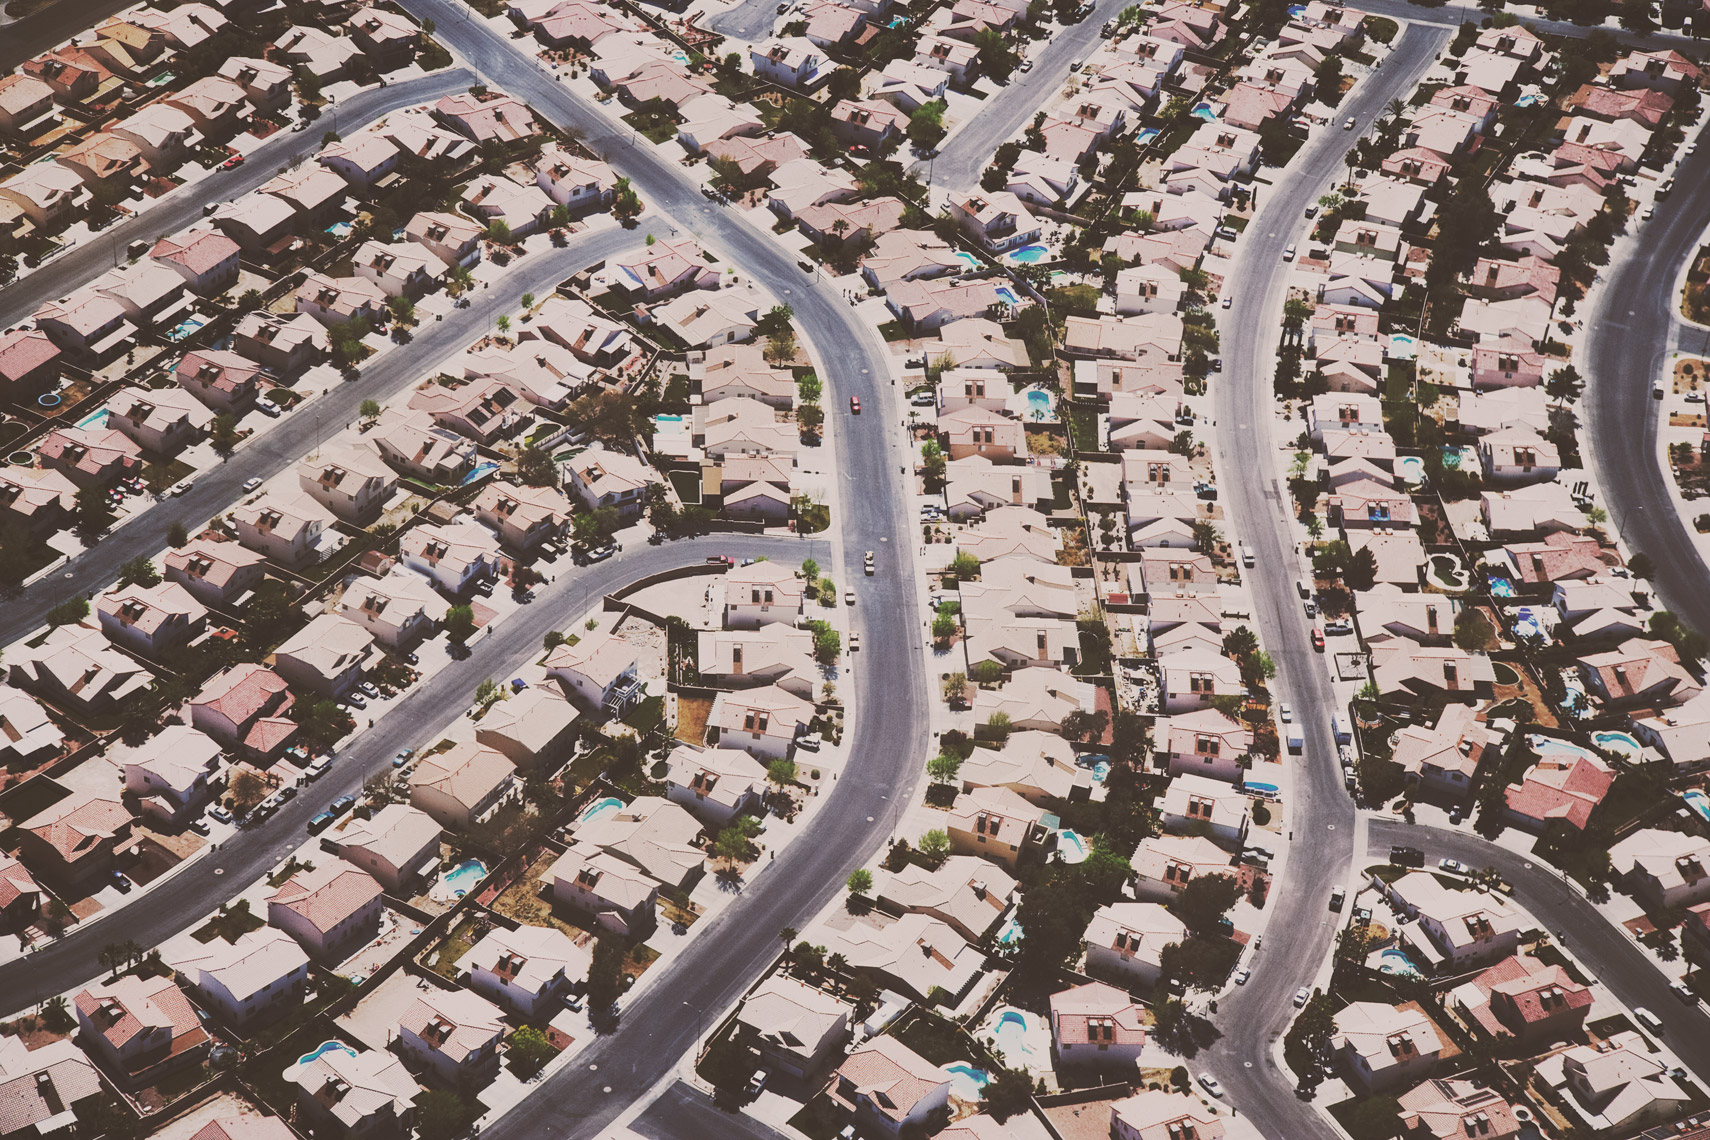 Aerial view of homes in North Las Vegas, Nevada